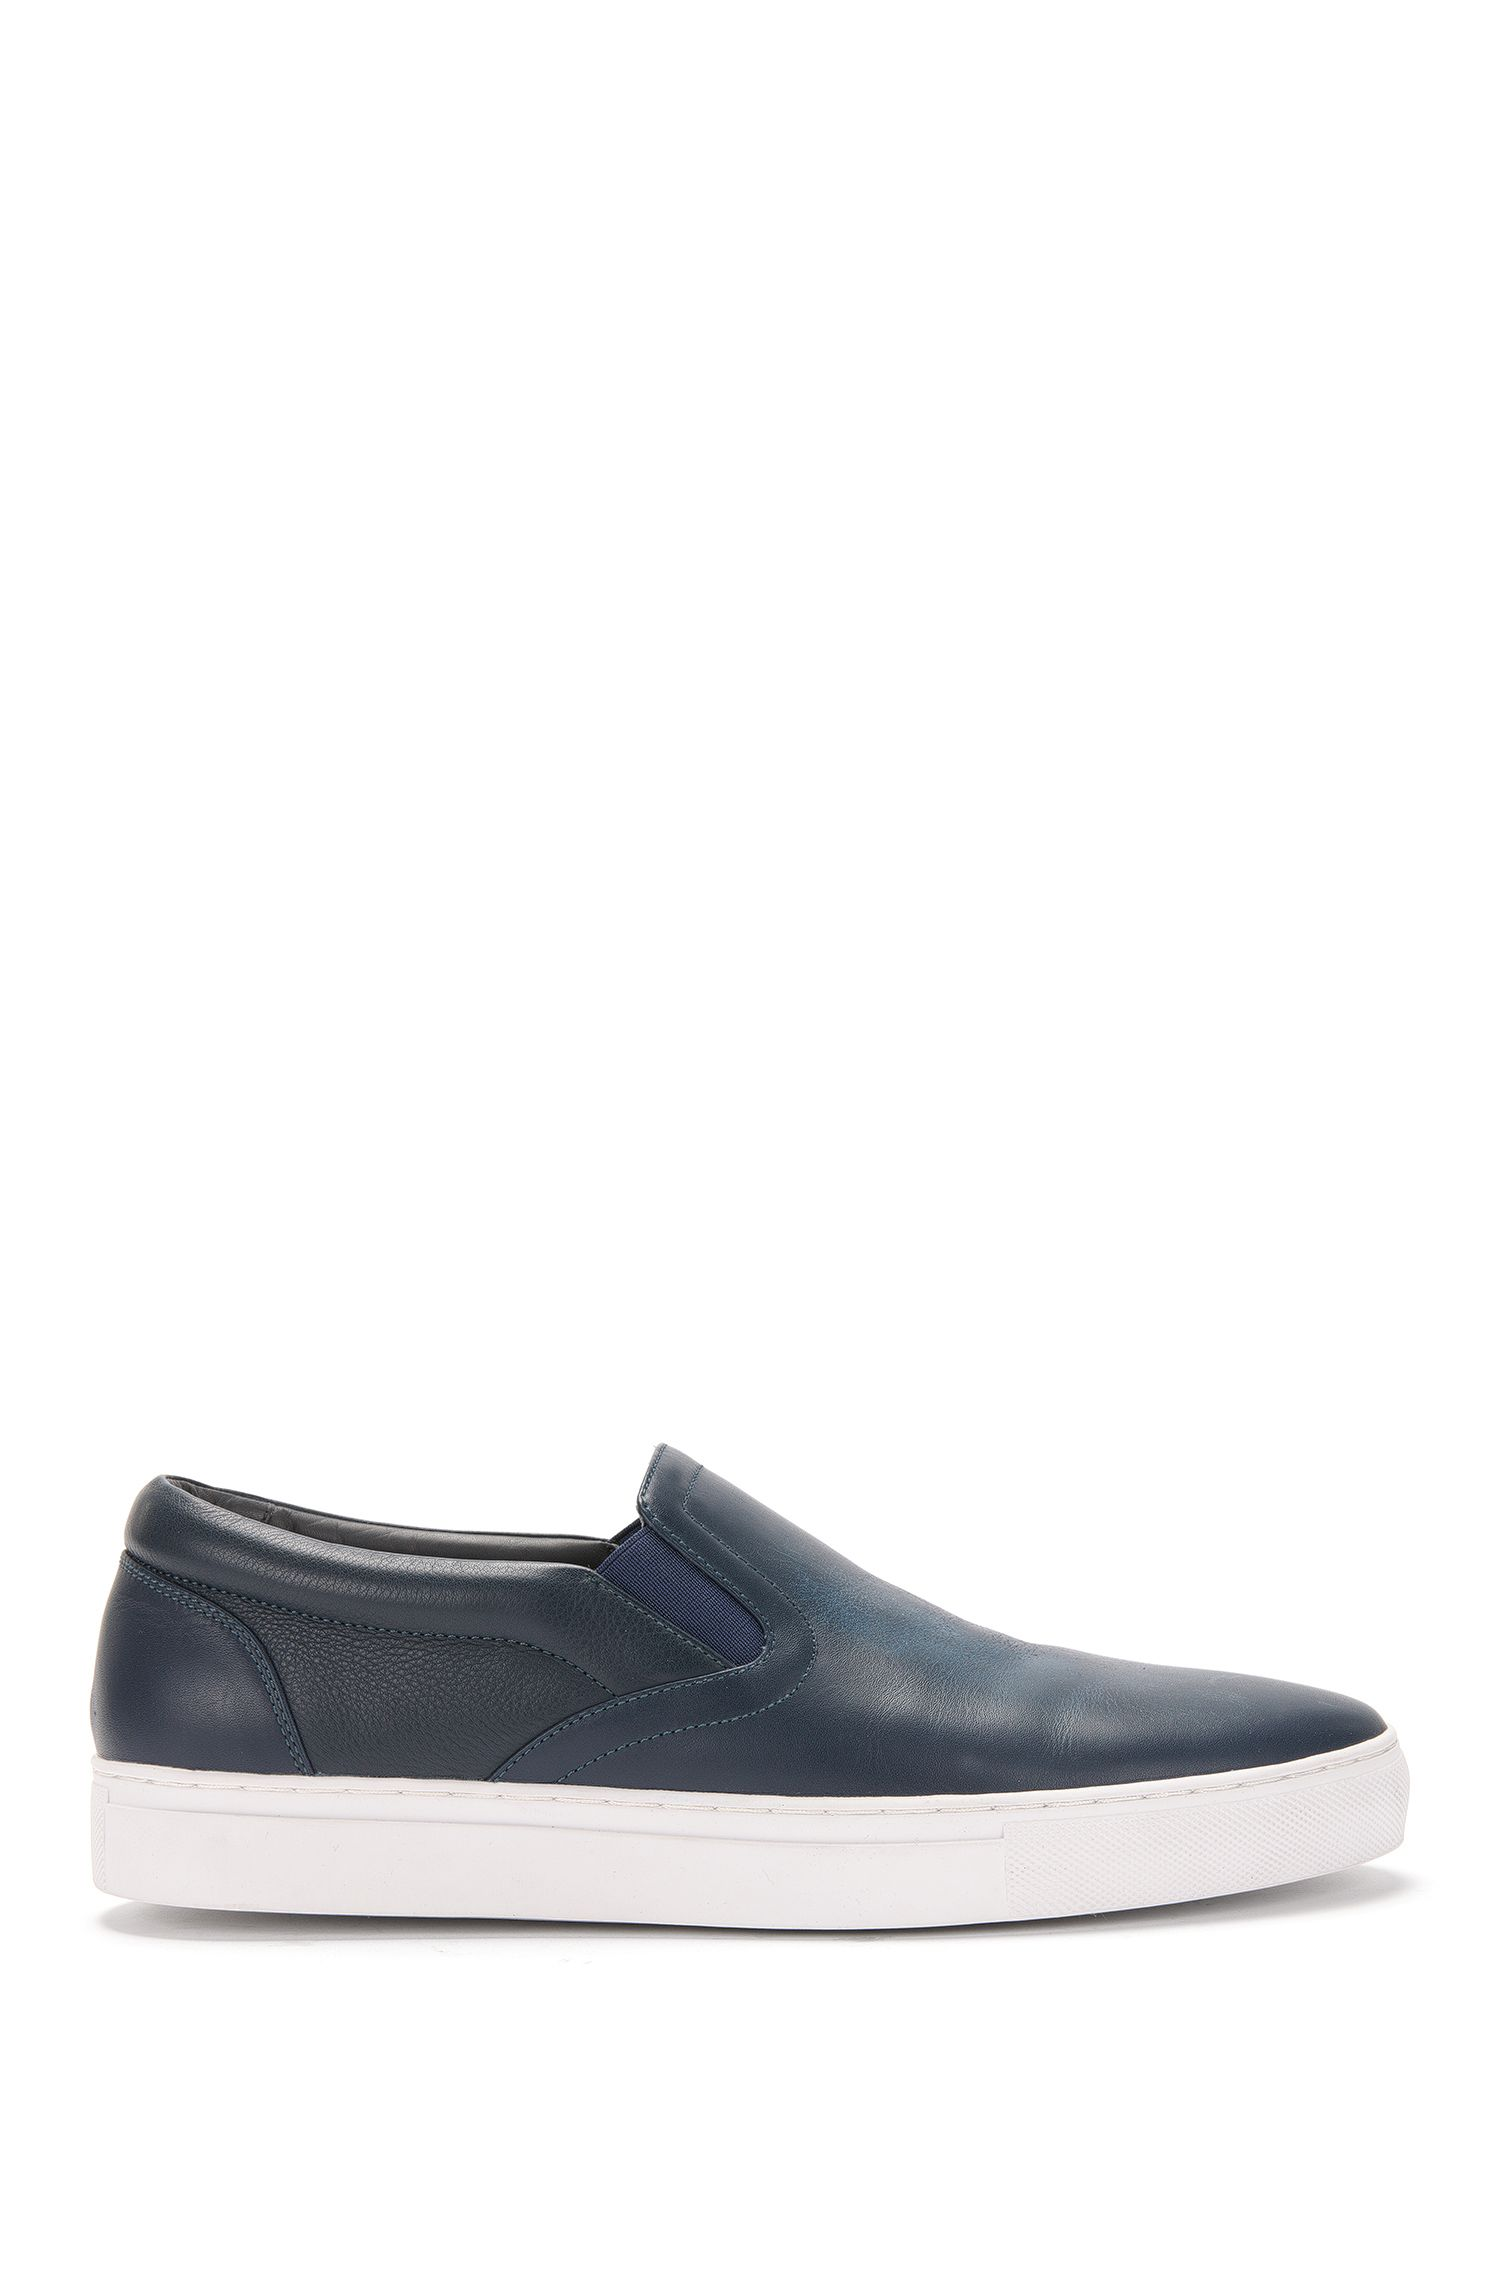 'Timeless Slon Mx' | Calfskin Slip-On Sneakers